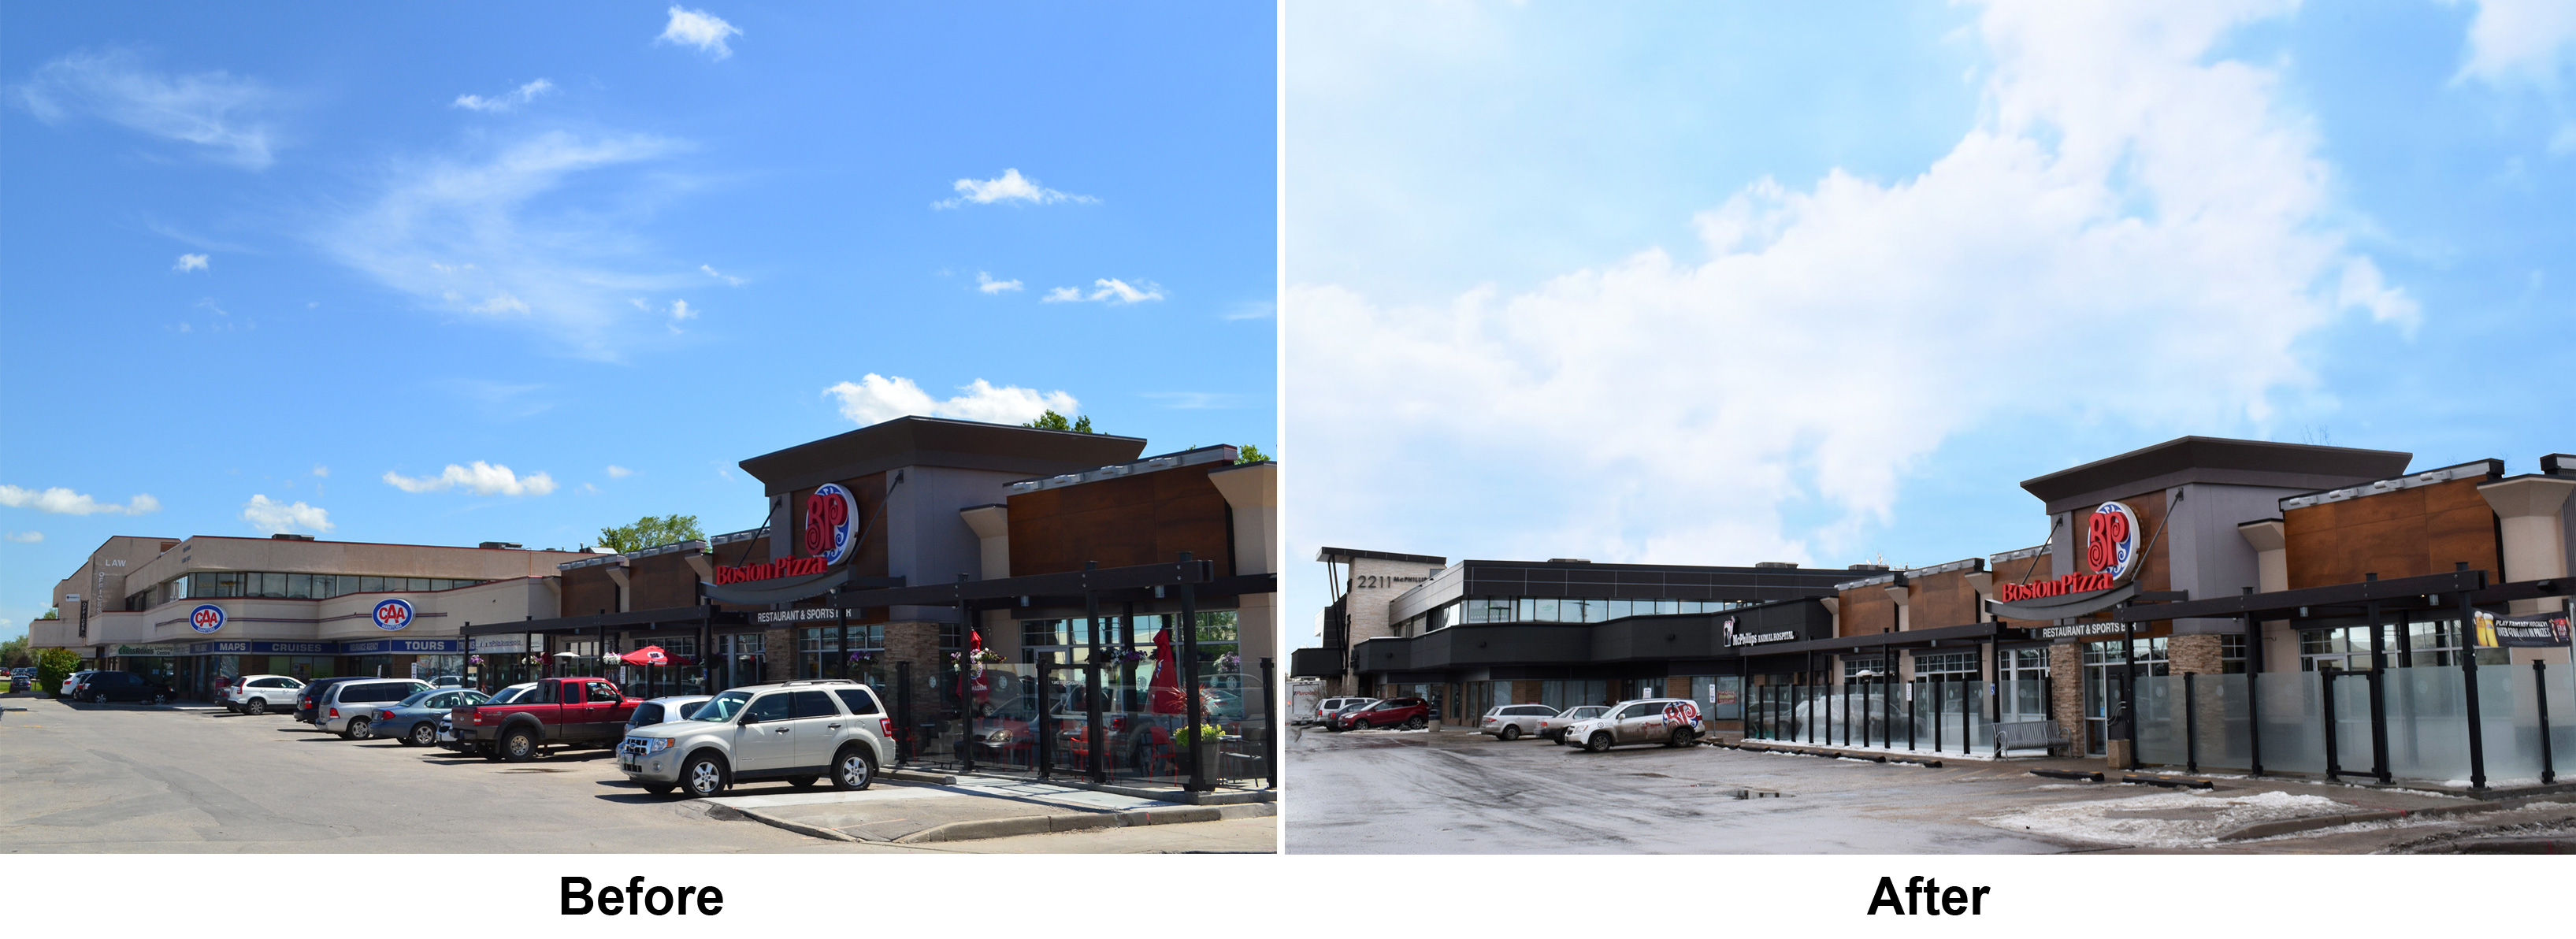 Garden City Plaza, Before and After